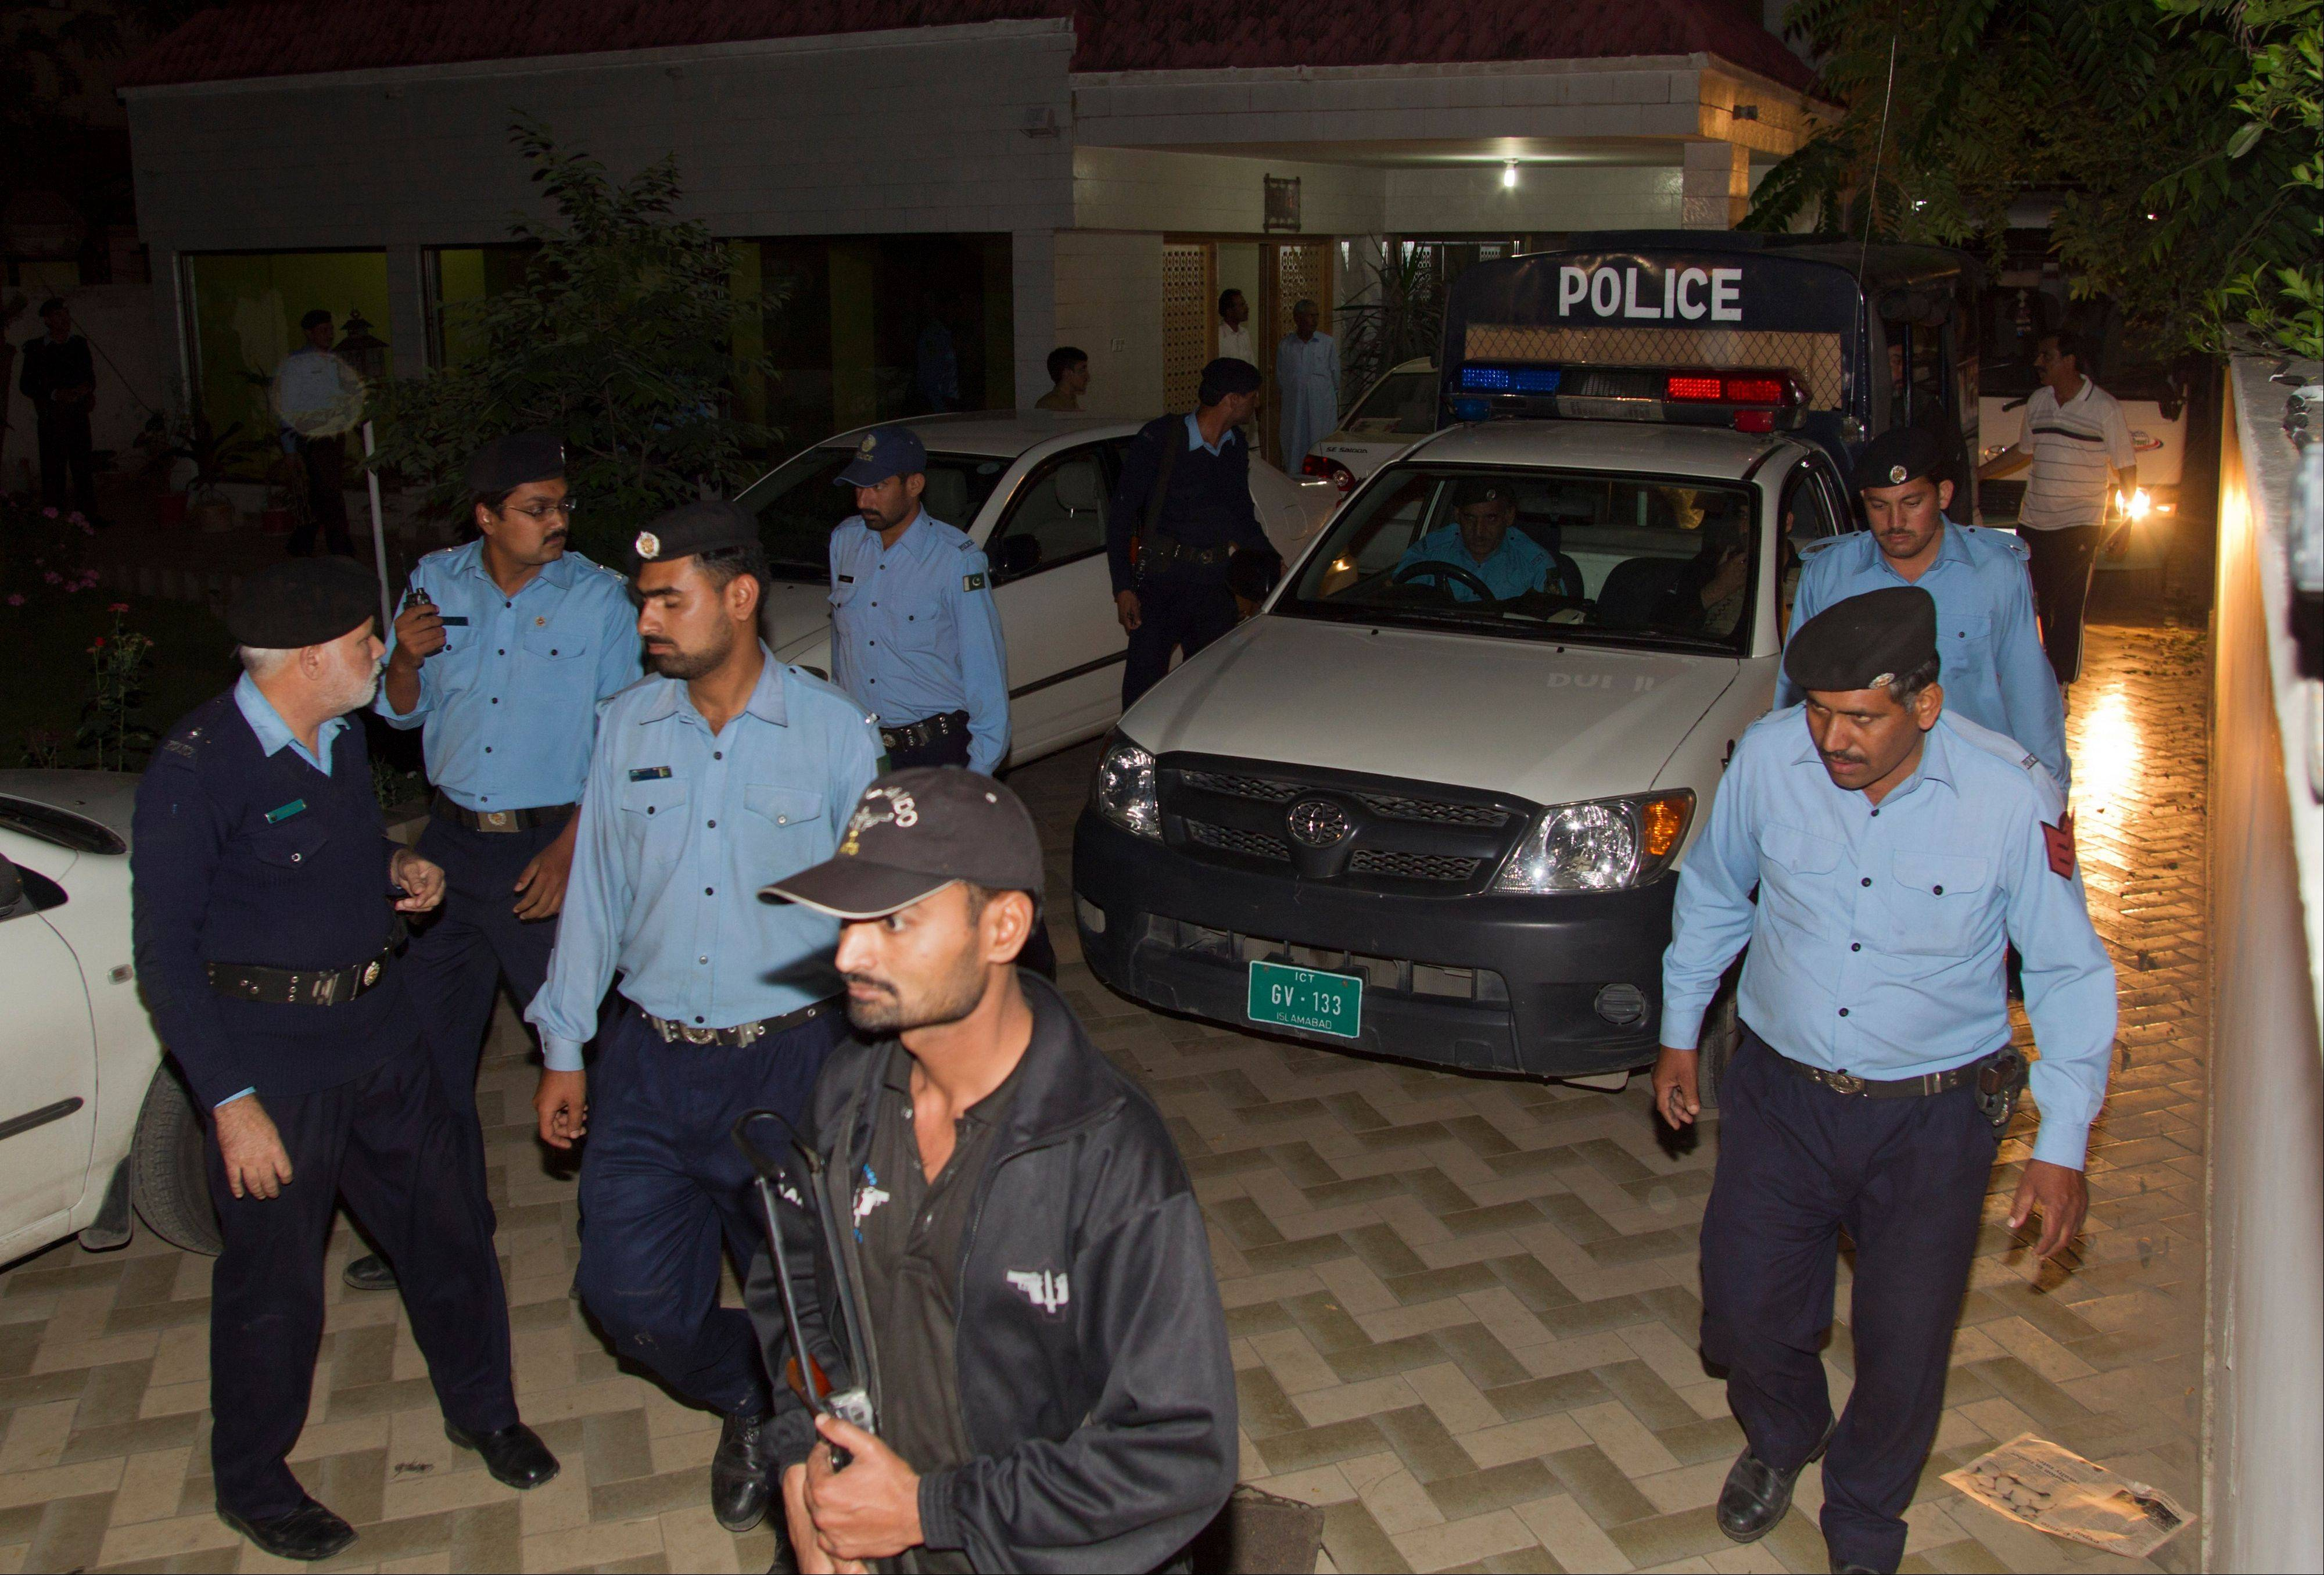 Police officers escort a vehicle carrying the family of Osama bin Laden Thursday in Islamabad, Pakistan. A van carrying the three widows and children of Bin Laden has left the house where they have been staying in Islamabad and is en route to the airport, from where they will be deported to Saudi Arabia, officials and witness said.